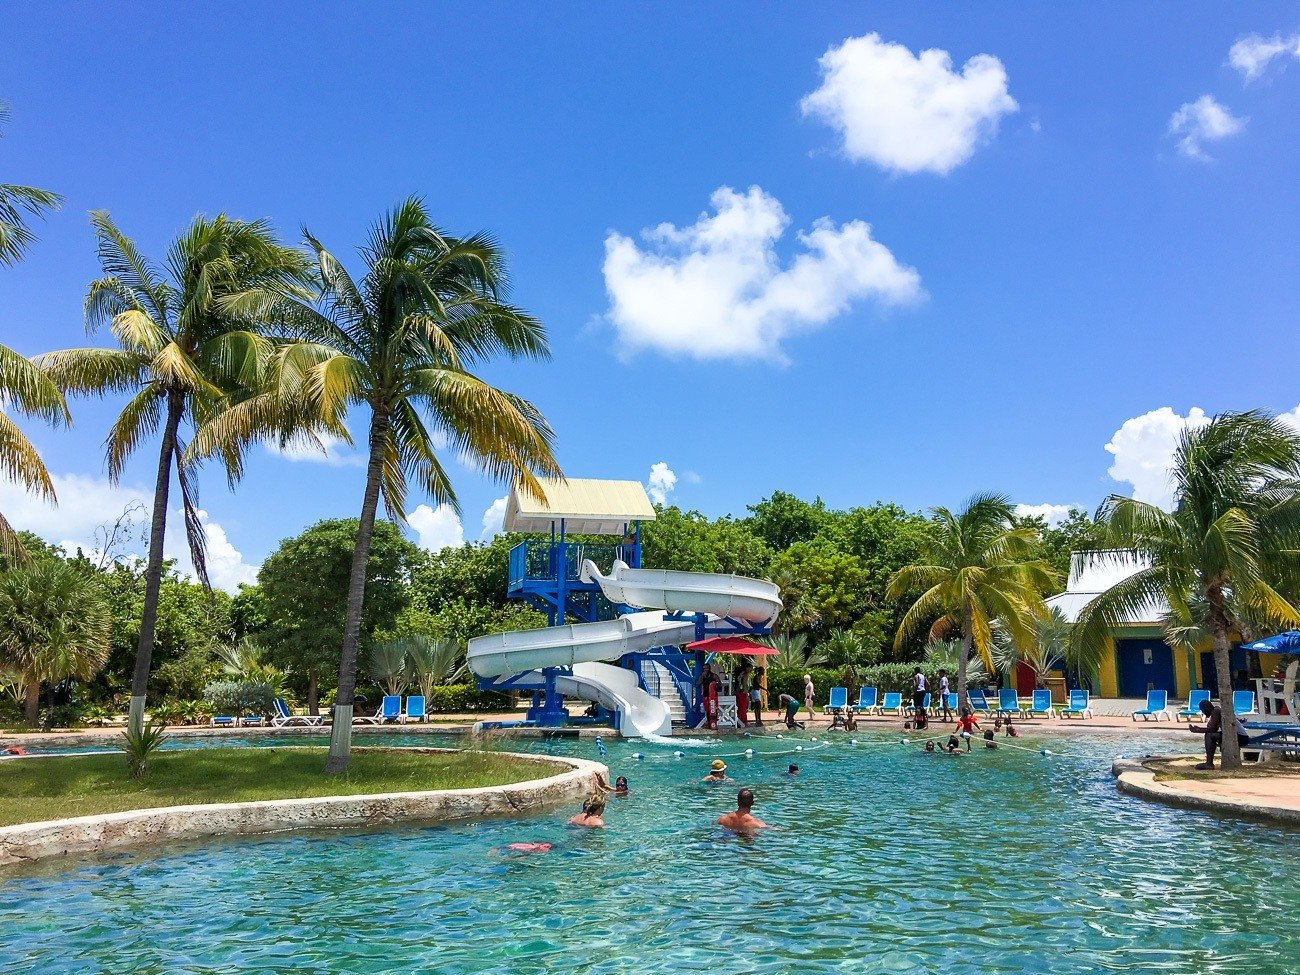 Waterslide in a pool at Cayman Turtle Centre in Grand Cayman with kids.